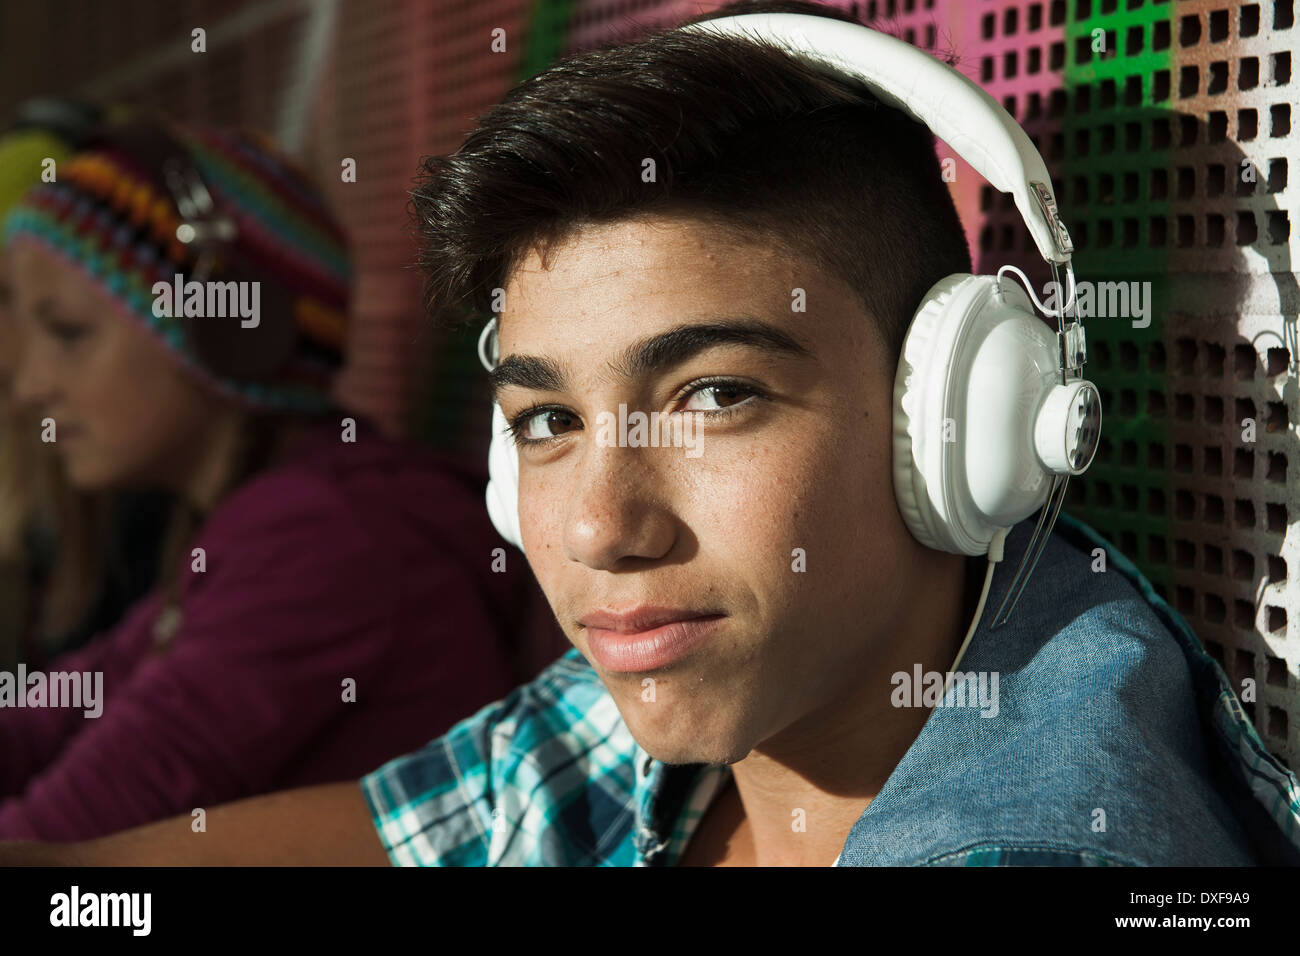 Close-up portrait of boy sitting next to wall outdoors, wearing headphones and looking at camera, Germany Stock Photo